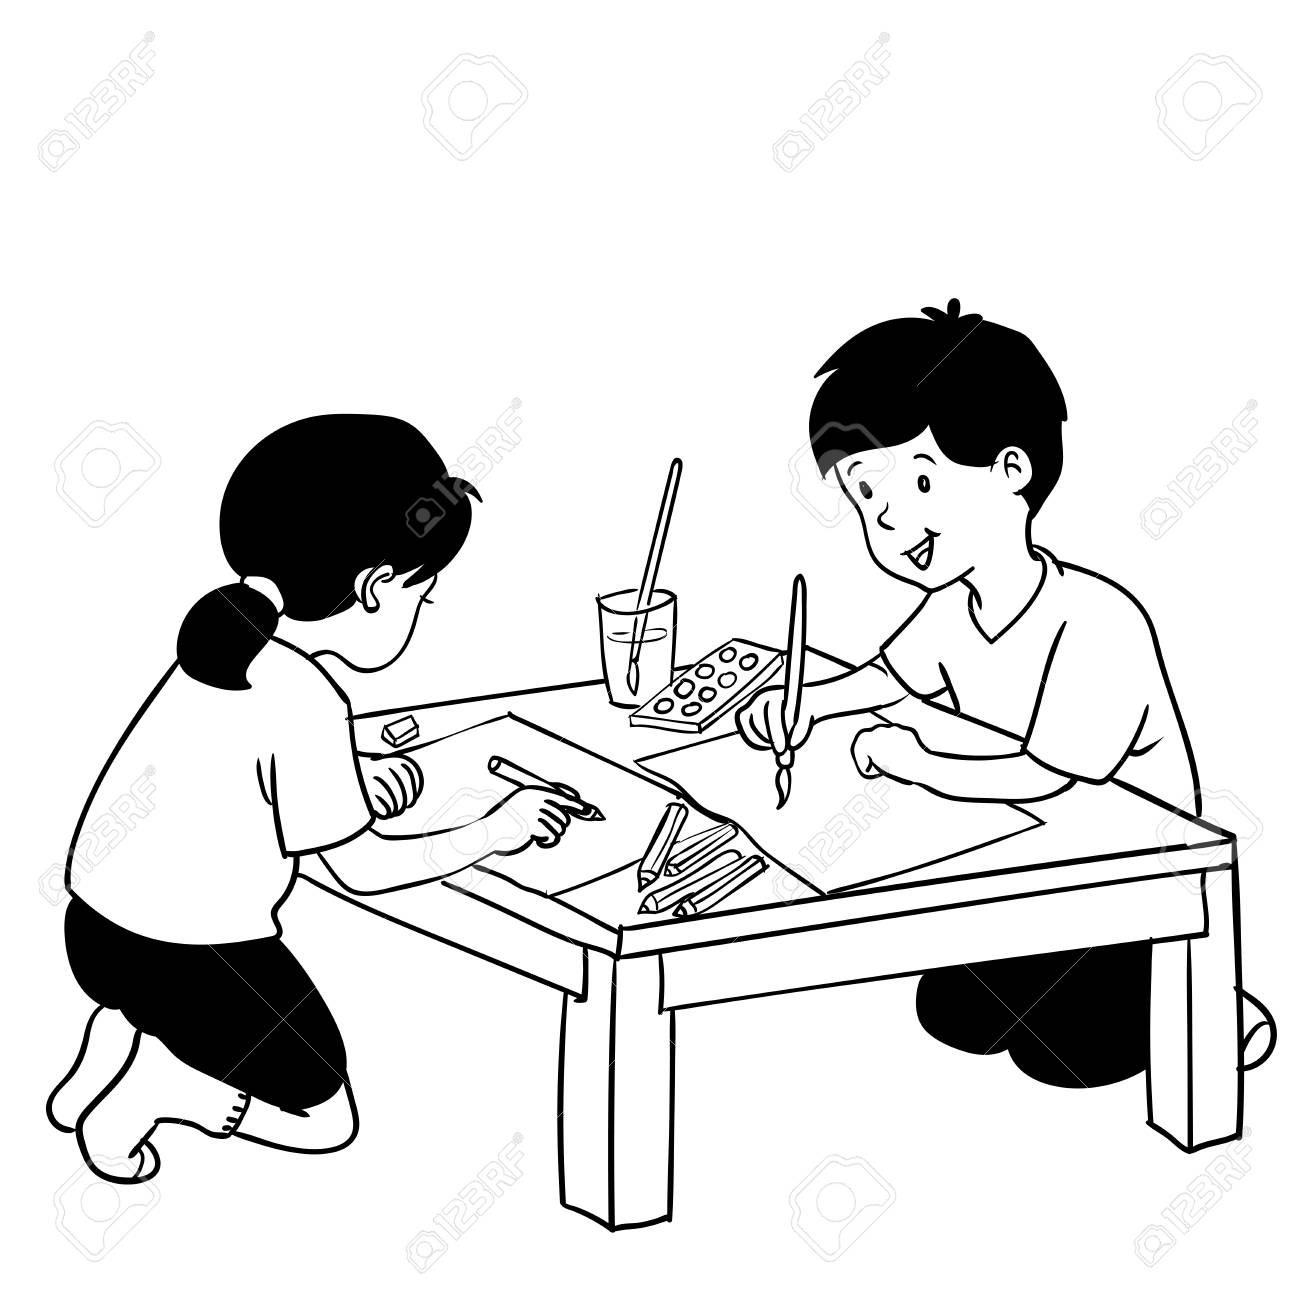 1300x1300 Illustration Of Kids Painting On Art Class, Hand Drawn Vector